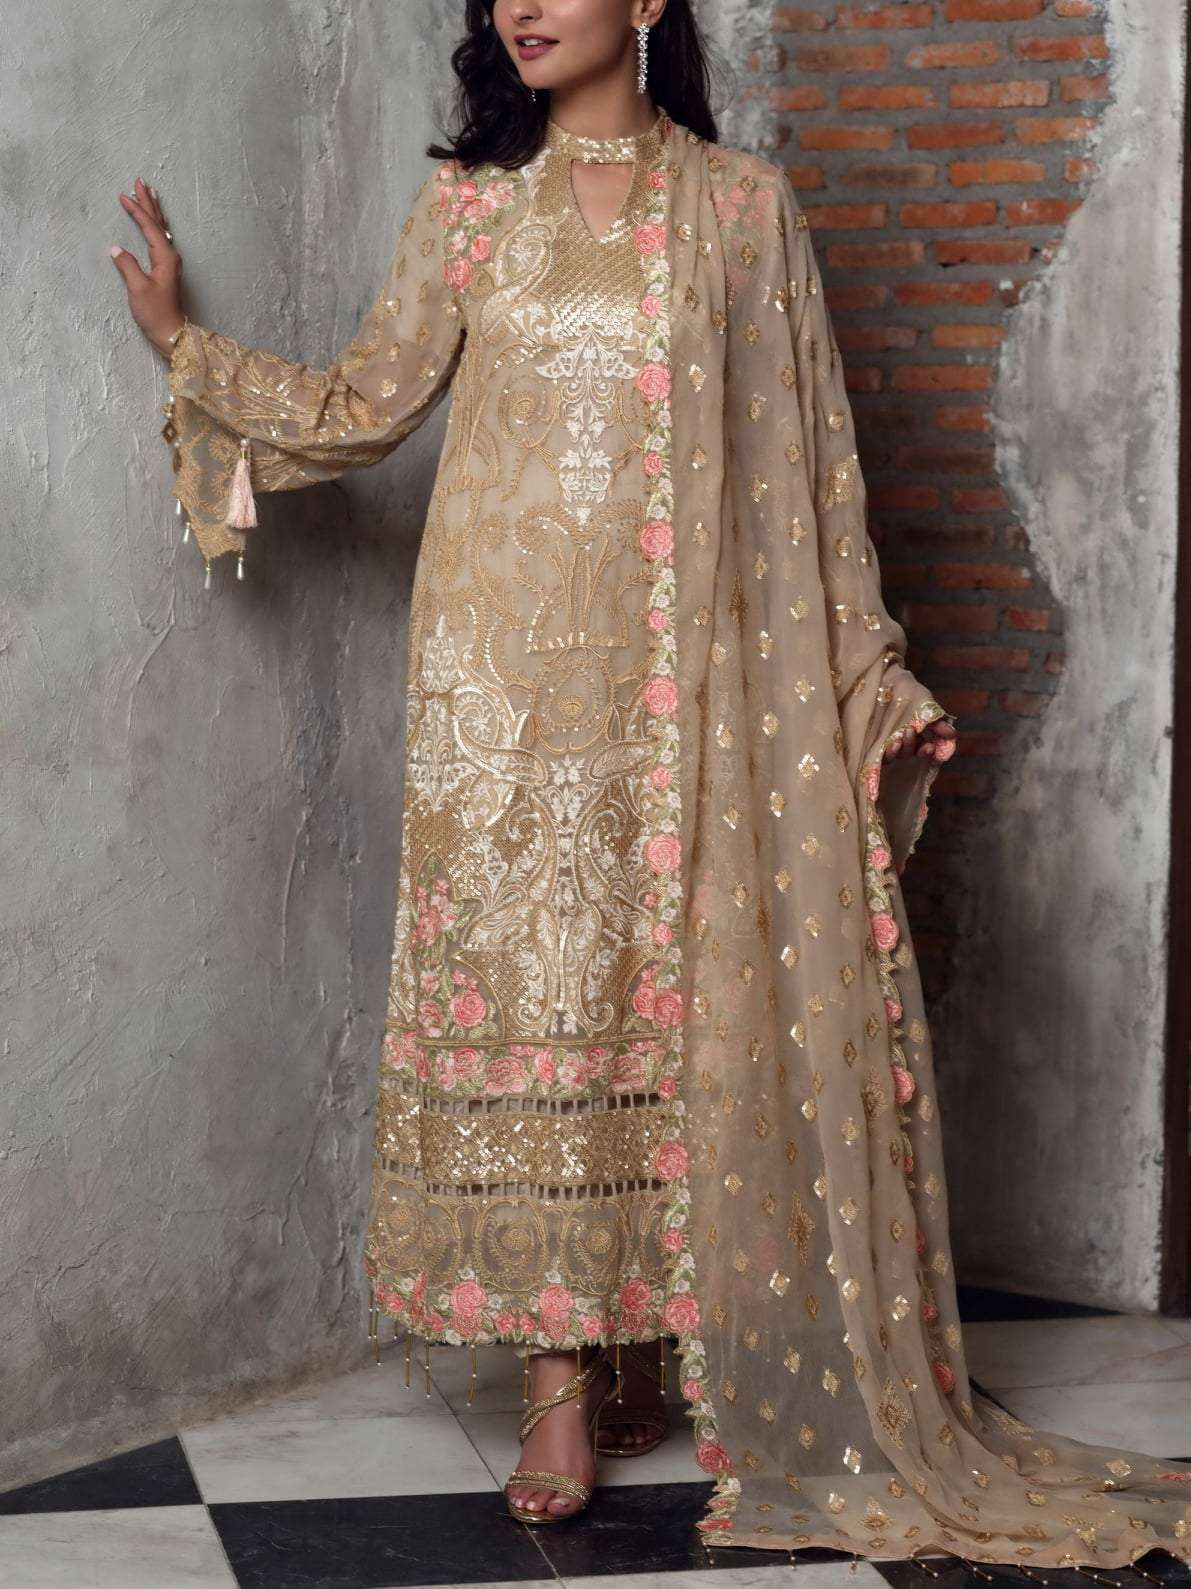 Ladies Un-Stitch Bemisal Luxury Chiffon Collection 2020 Caramel Whisper-BVS10